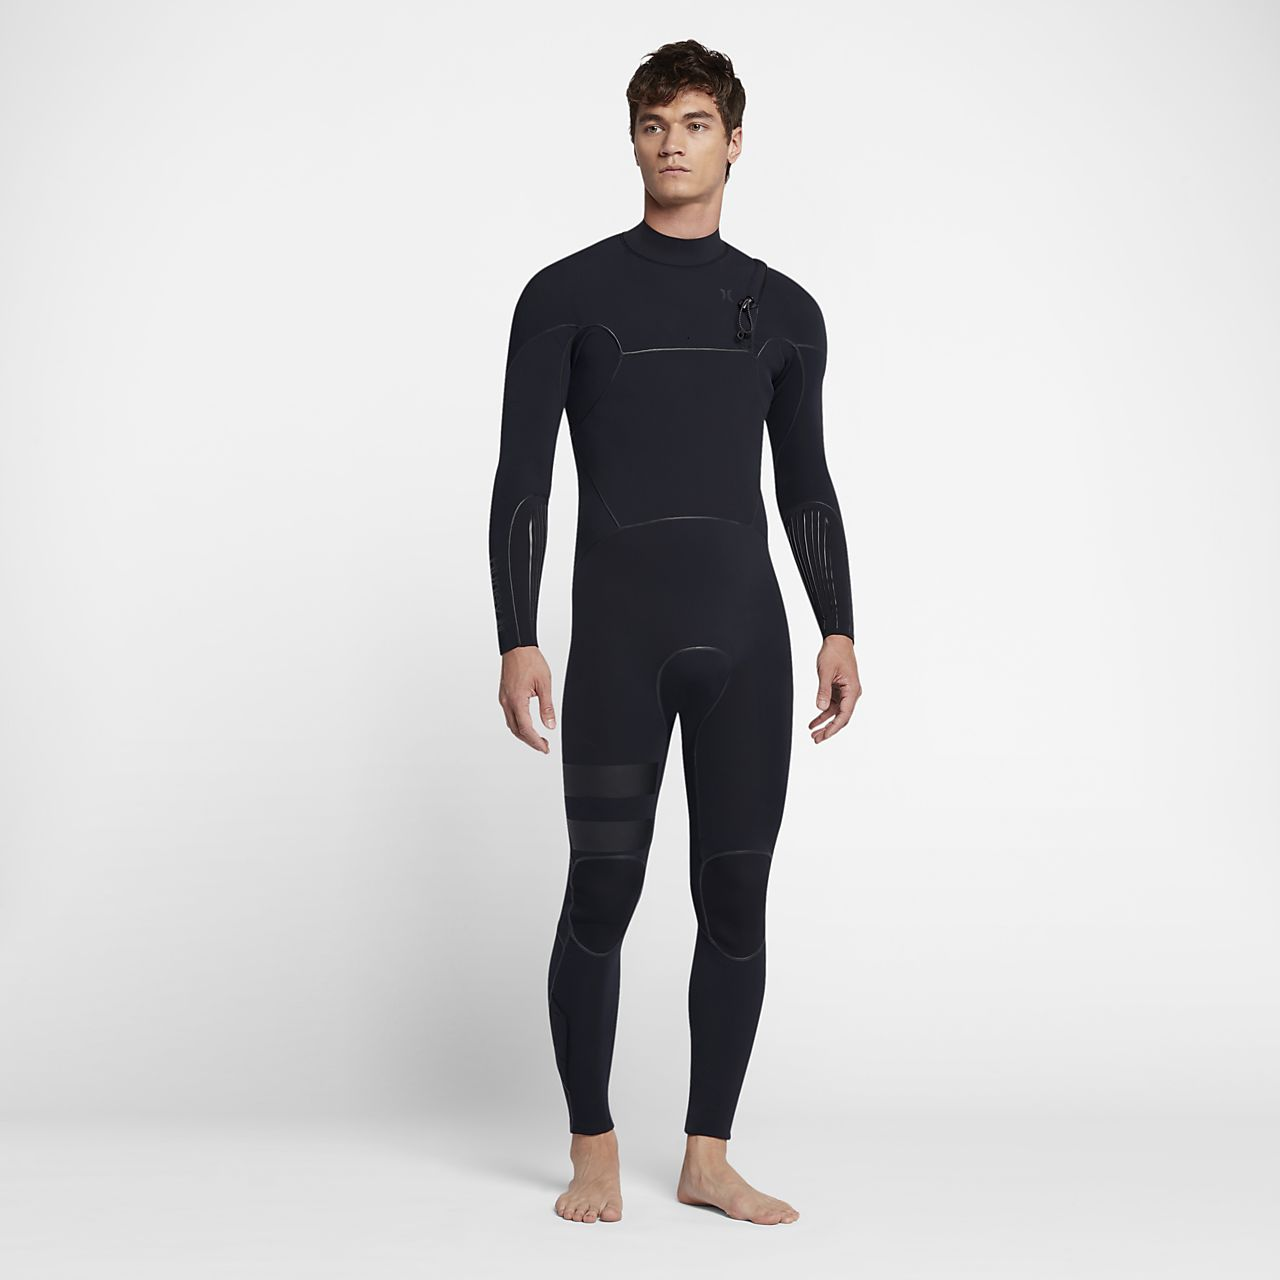 Hurley Advantage Max 3/3mm Fullsuit Men's Wetsuit